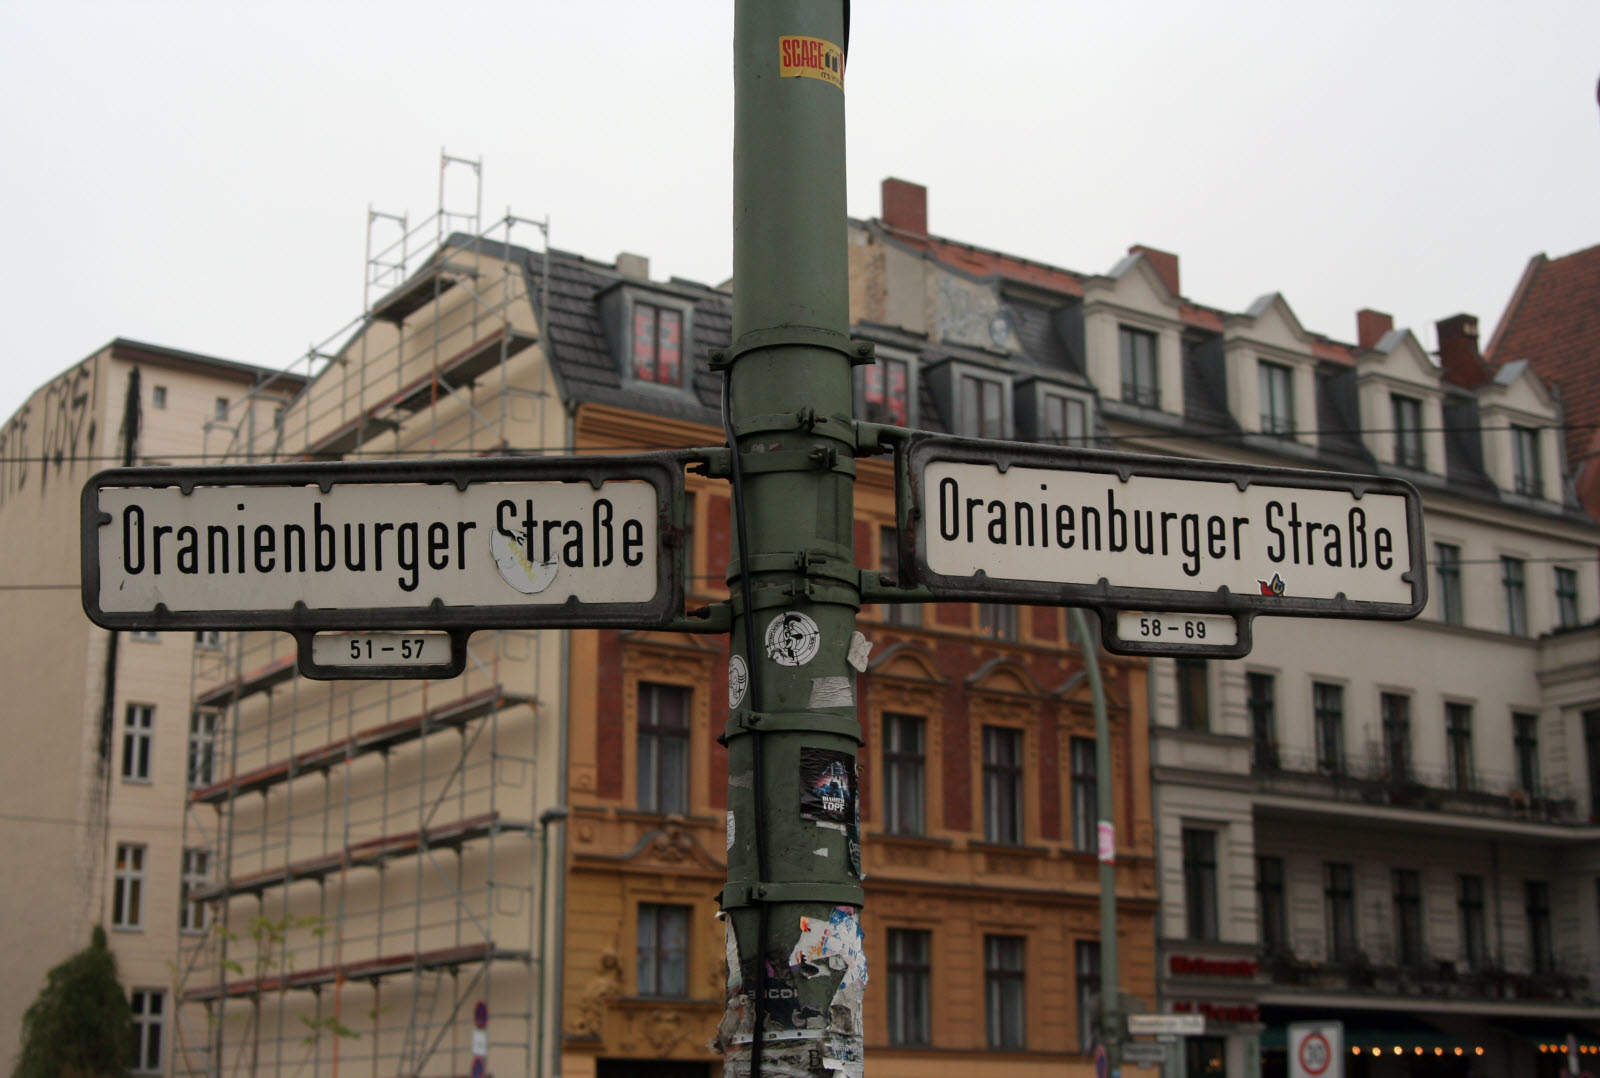 Street sign in Berlin